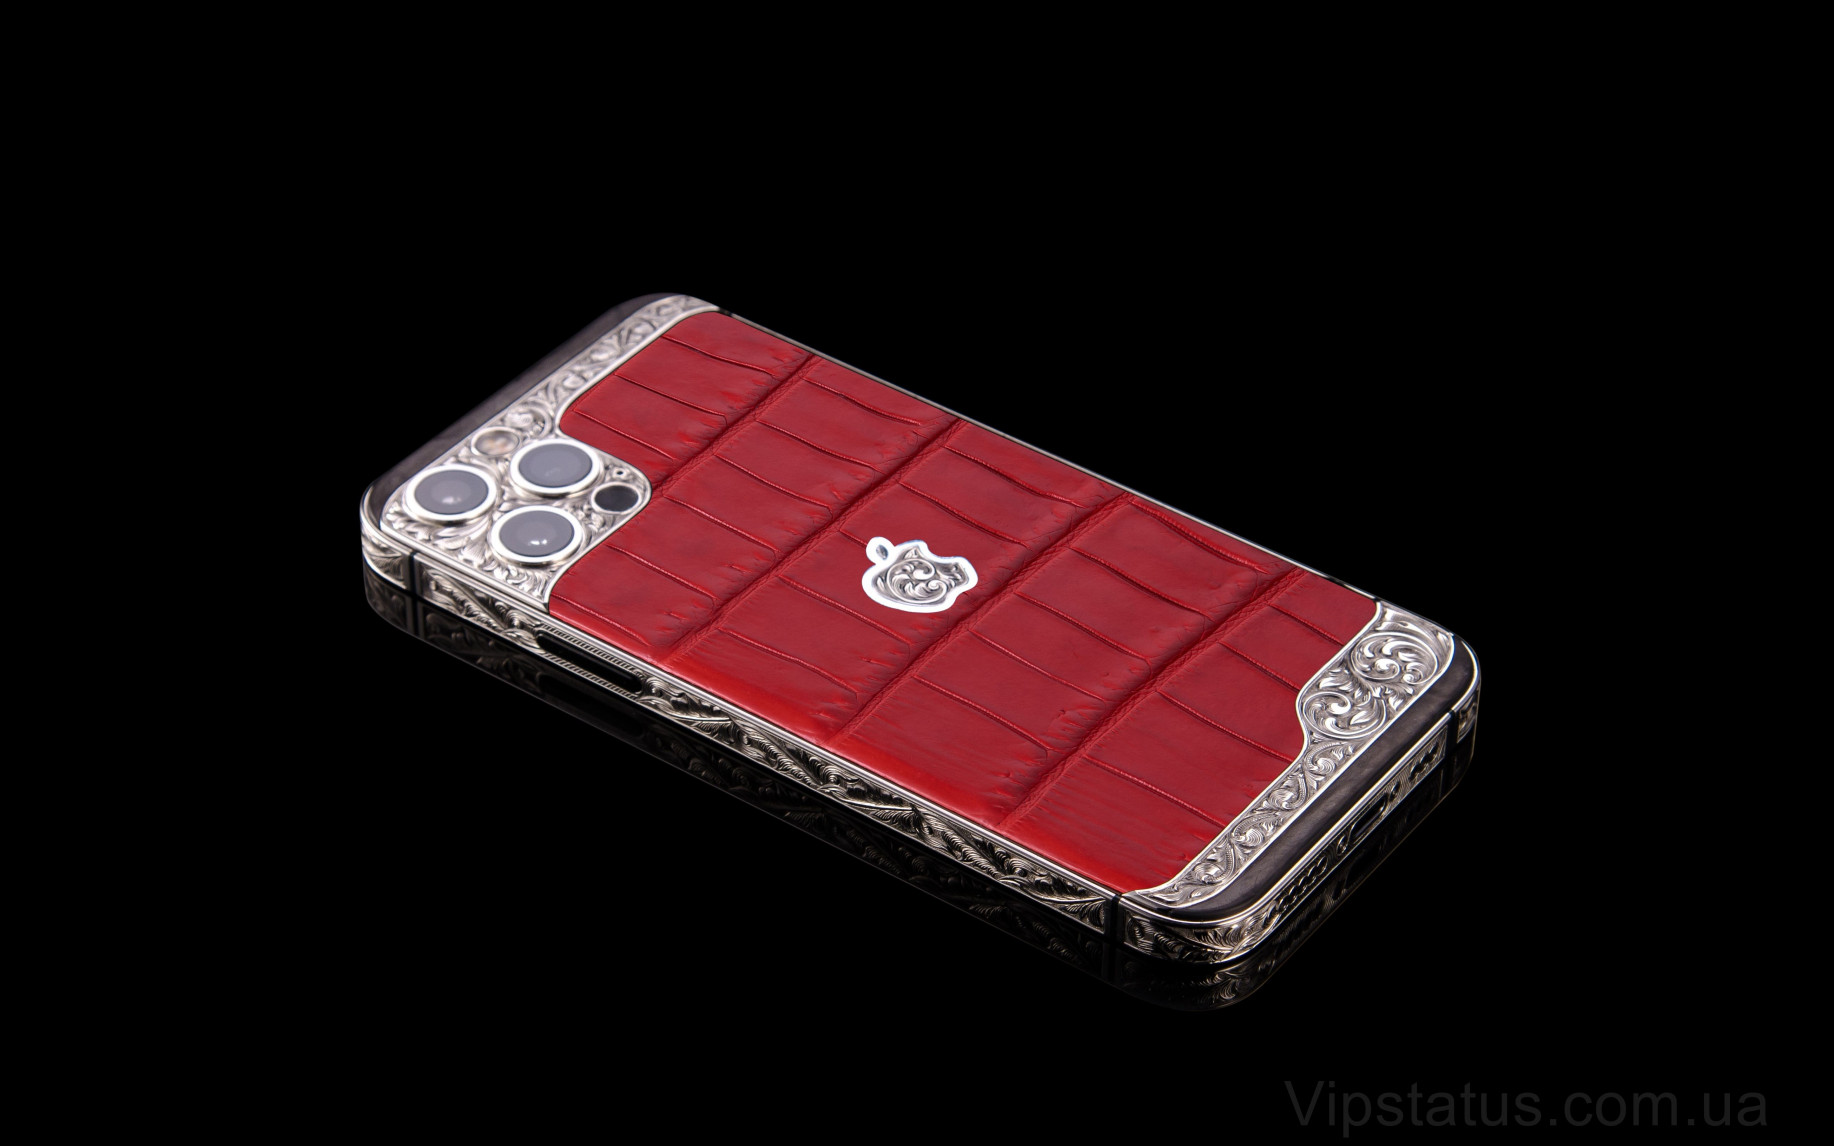 Elite Red Queen Edition IPHONE 12 PRO MAX 512 GB Red Queen Edition IPHONE 12 PRO MAX 512 GB image 7